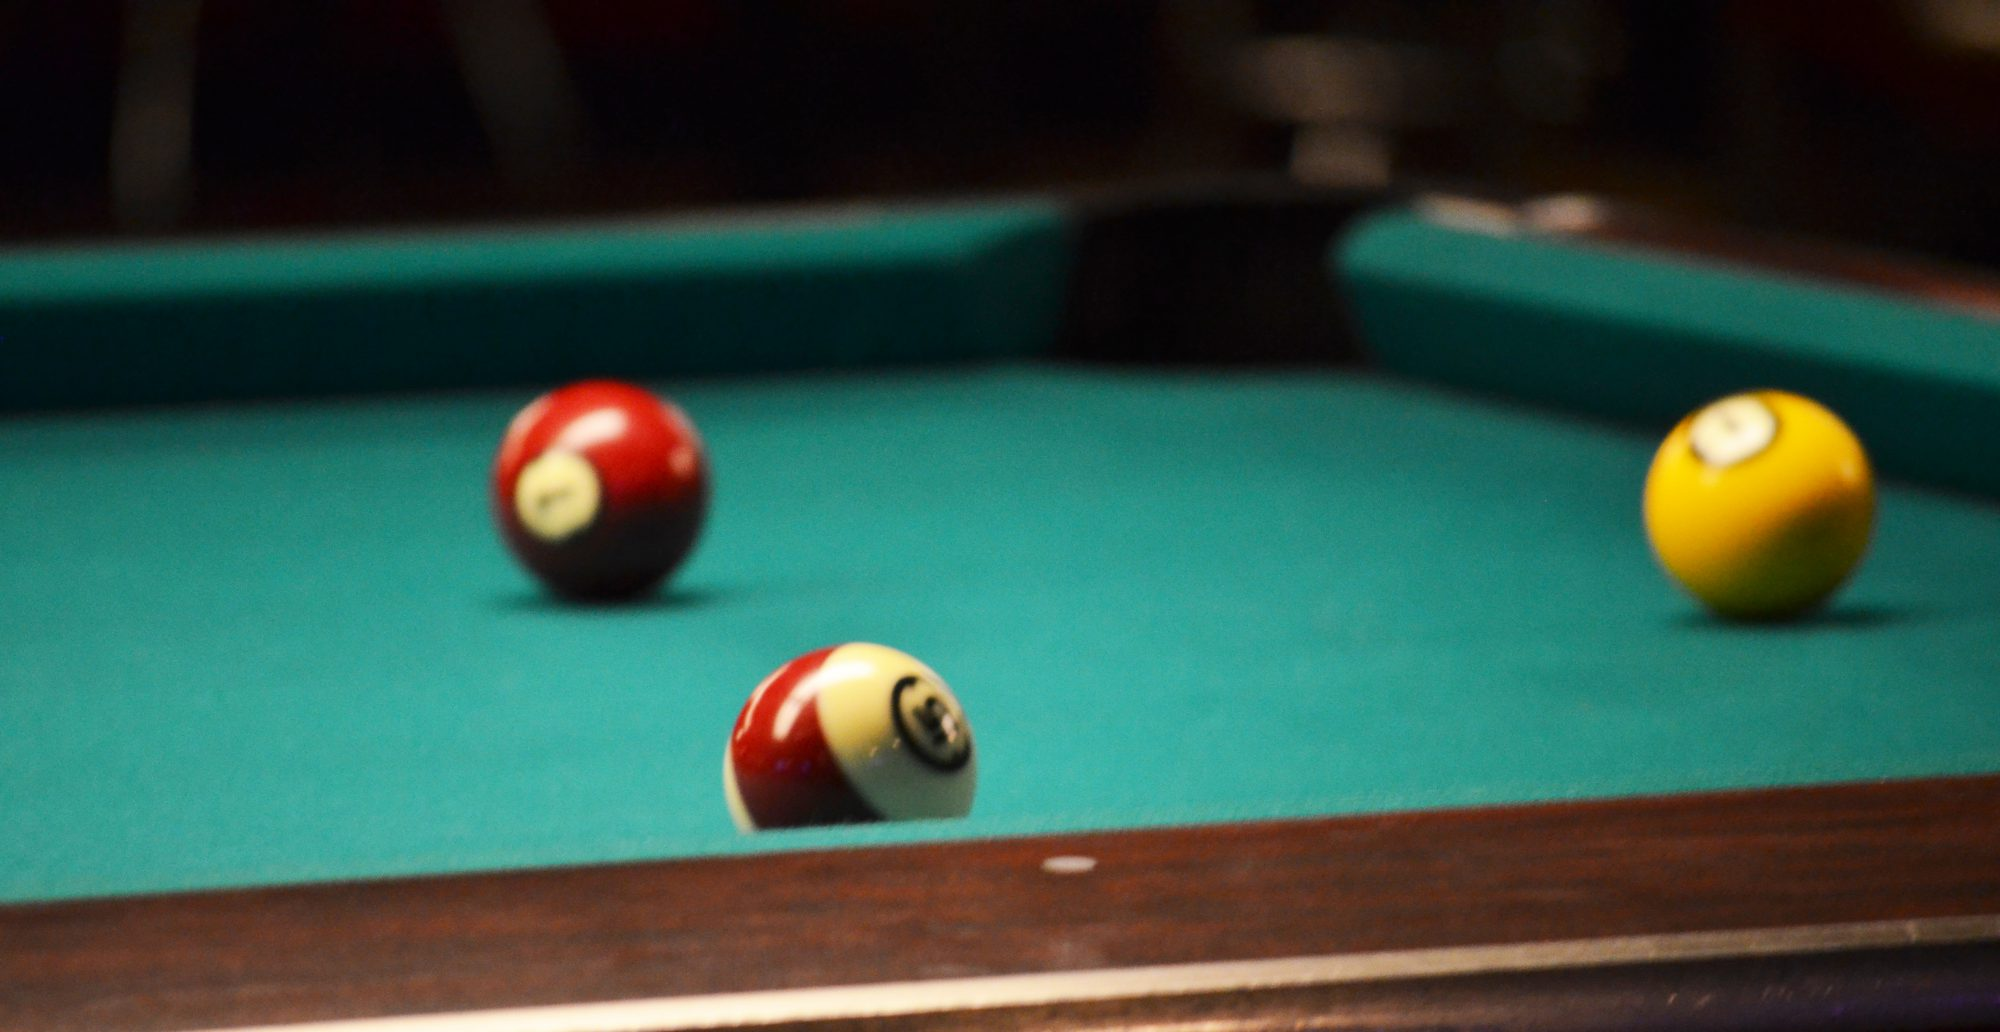 High House Billiards: Open 1pm to 12am 365 days a year